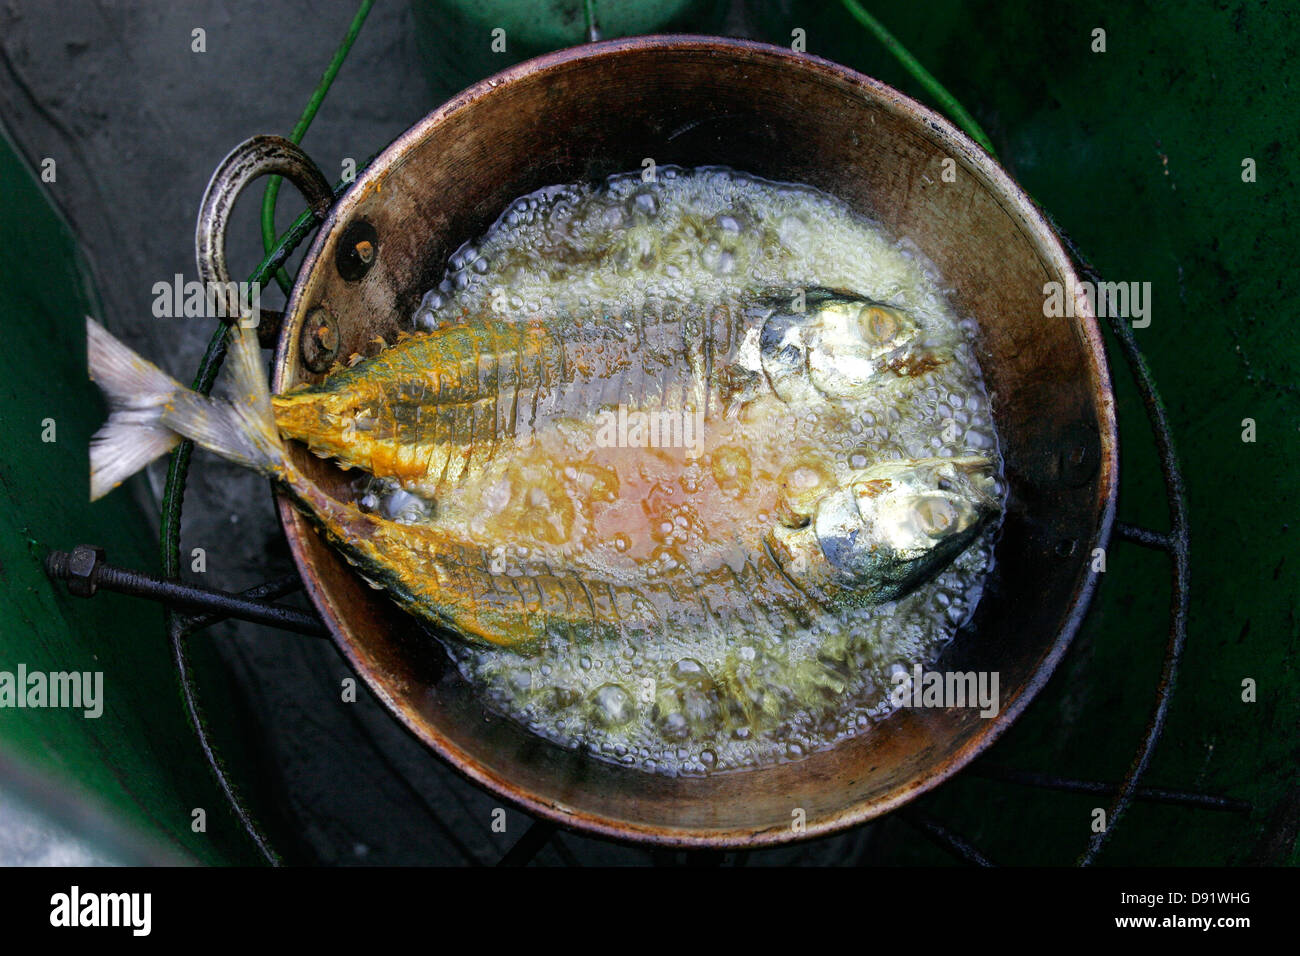 Fresh sea fish marinated in spices and cooked in the frying pan, Saint Martin Island, Bangladesh, Asia - Stock Image